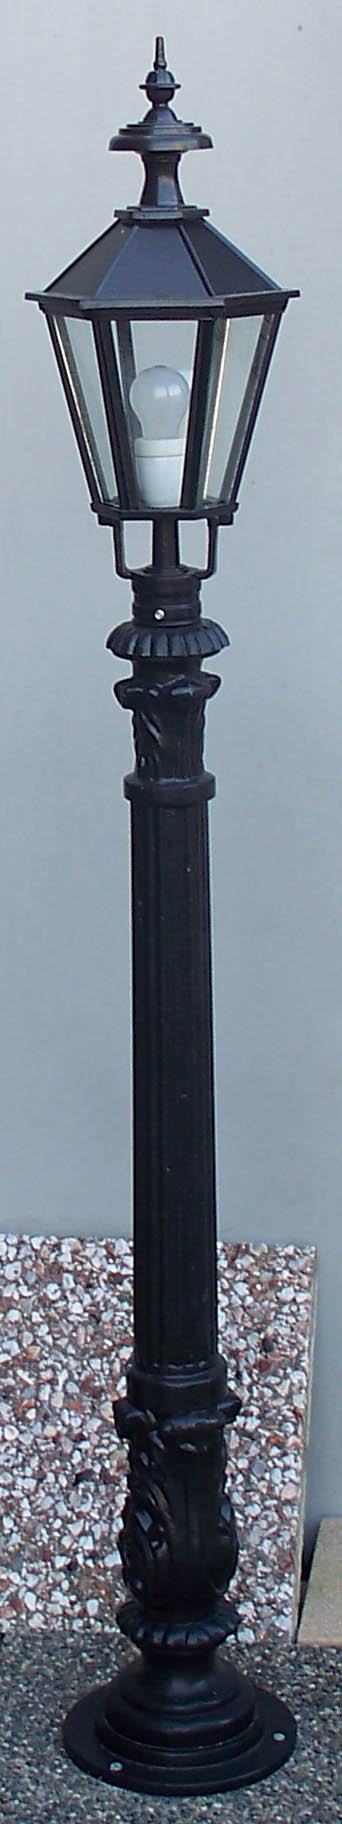 No 7 pole with small 6 sided head